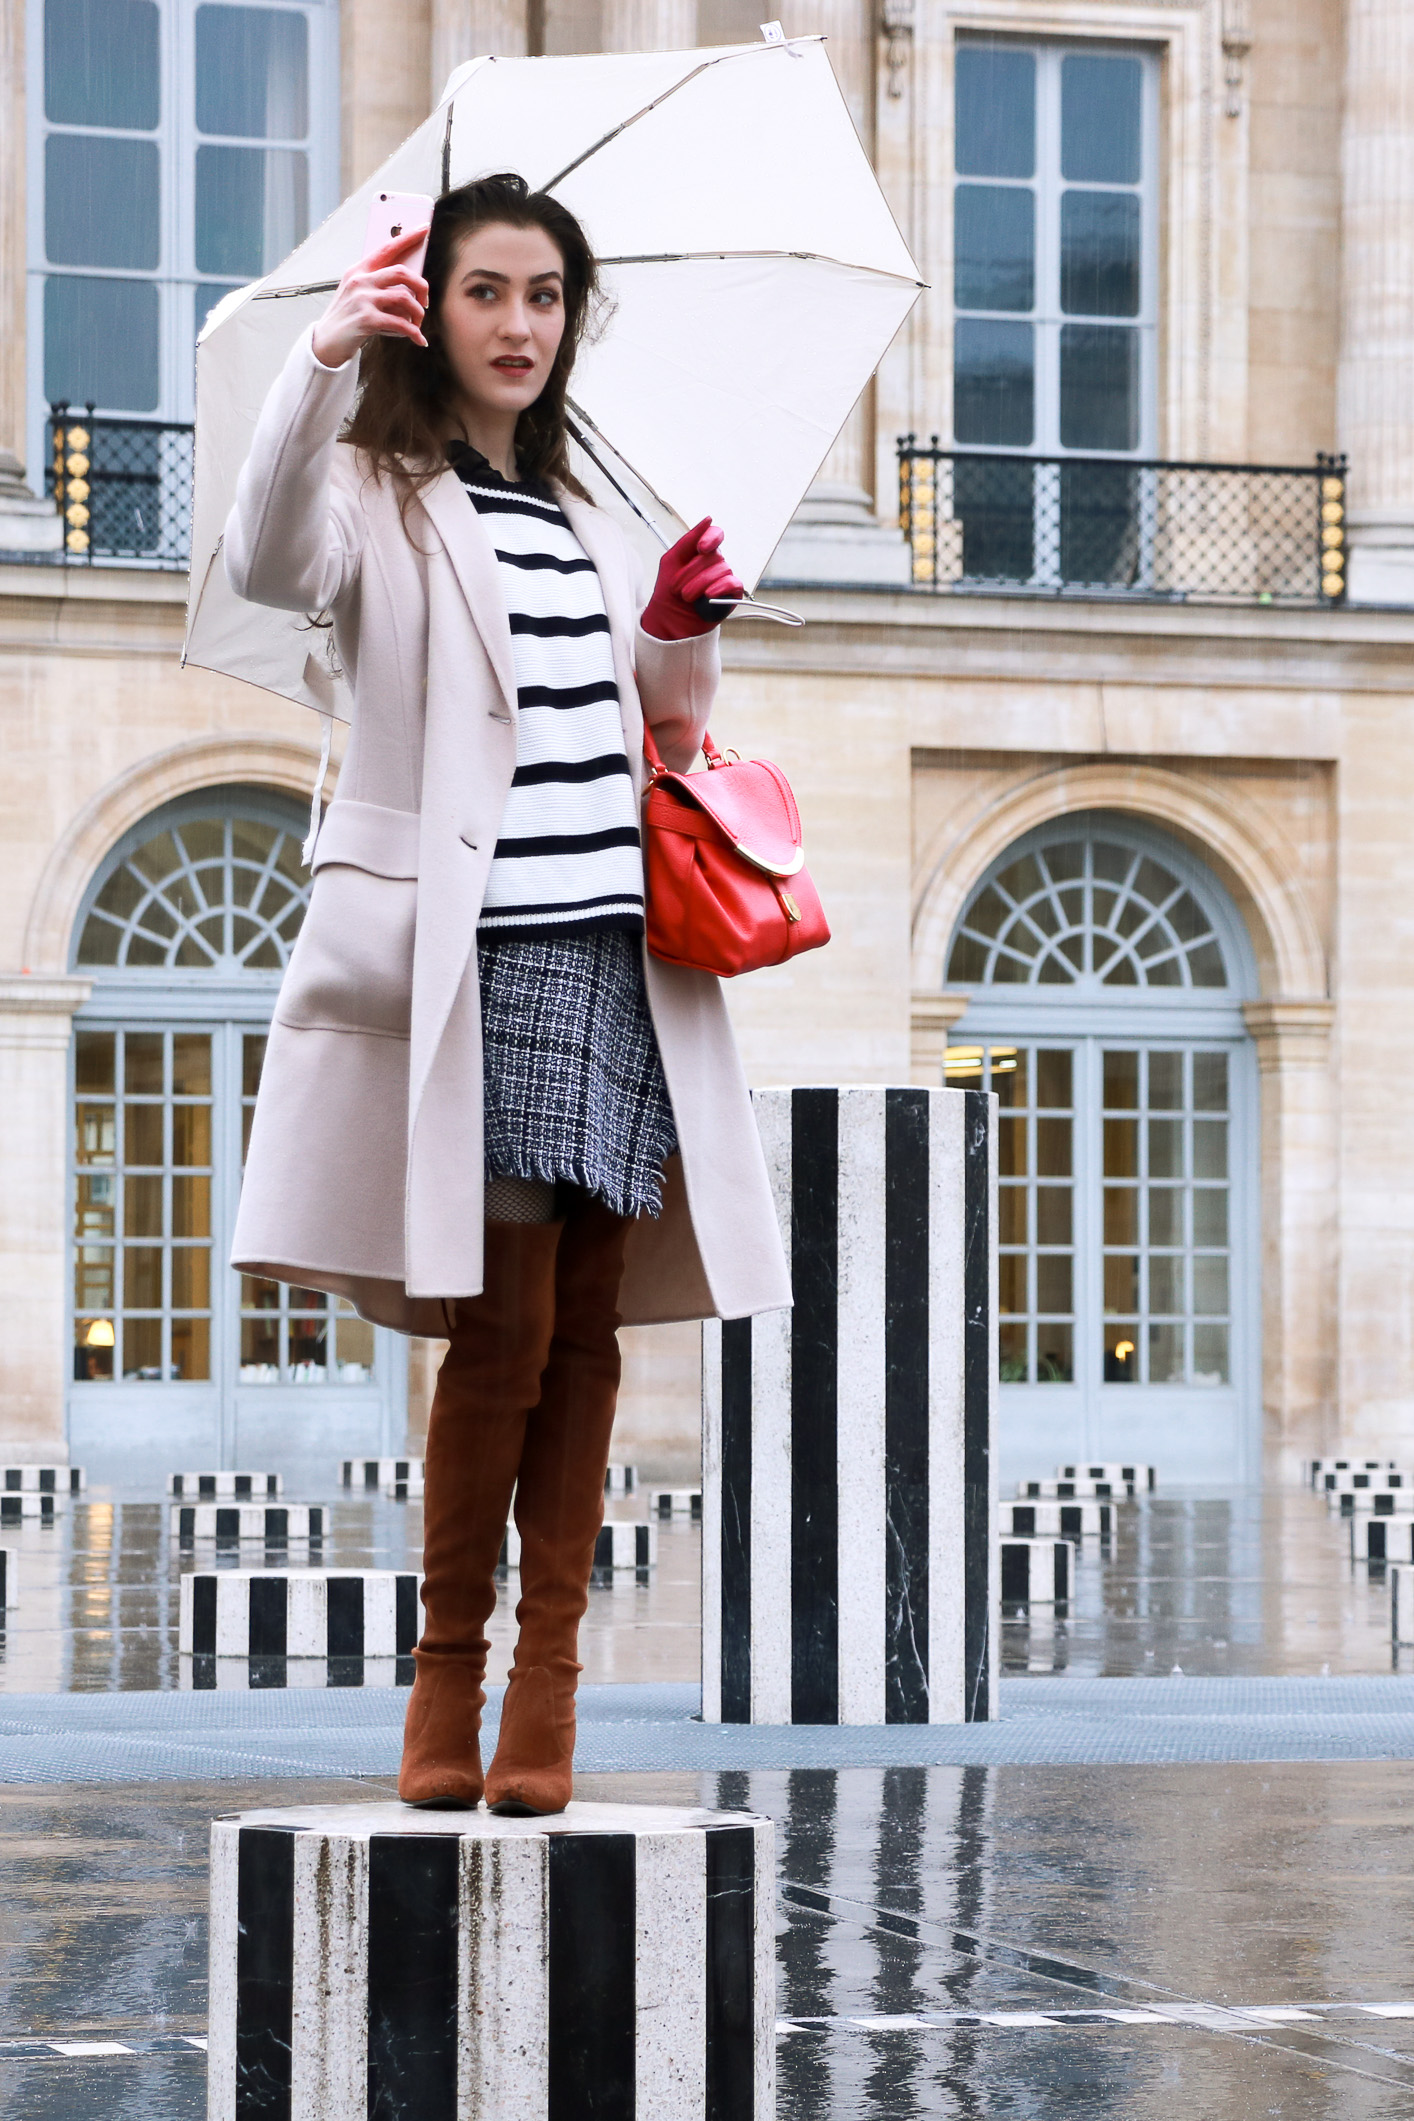 Fashion blogger Veronika Lipar of Brunette From Wall Street on her life as a Fashion Blogger